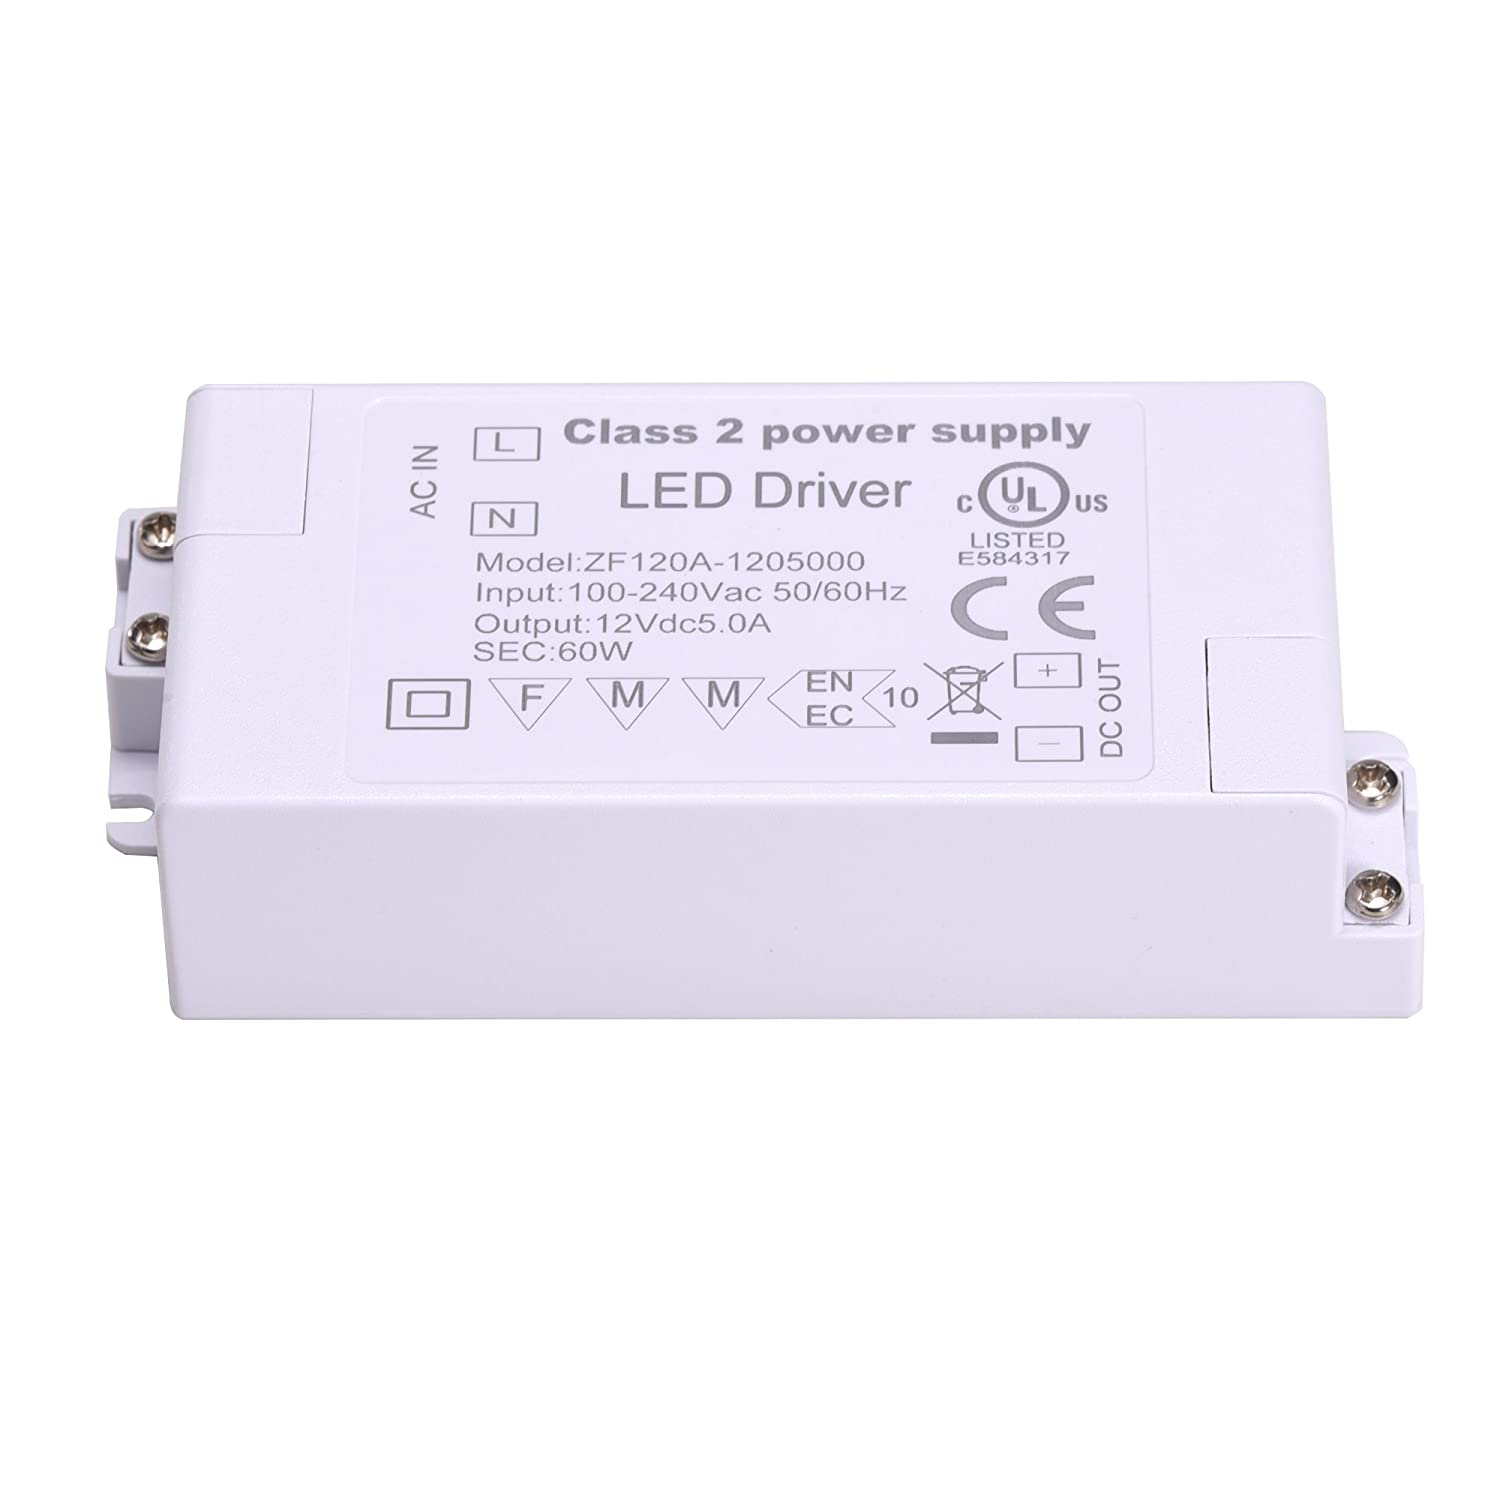 Led Driver 60w 12v Power Supply Adapter Ul Listed 100 240v Ac Innovative Circuit Ict120126a Comm Series 120vac 12vdc 6 Amp To Dc Transformer 5a Low Voltage Strip Light